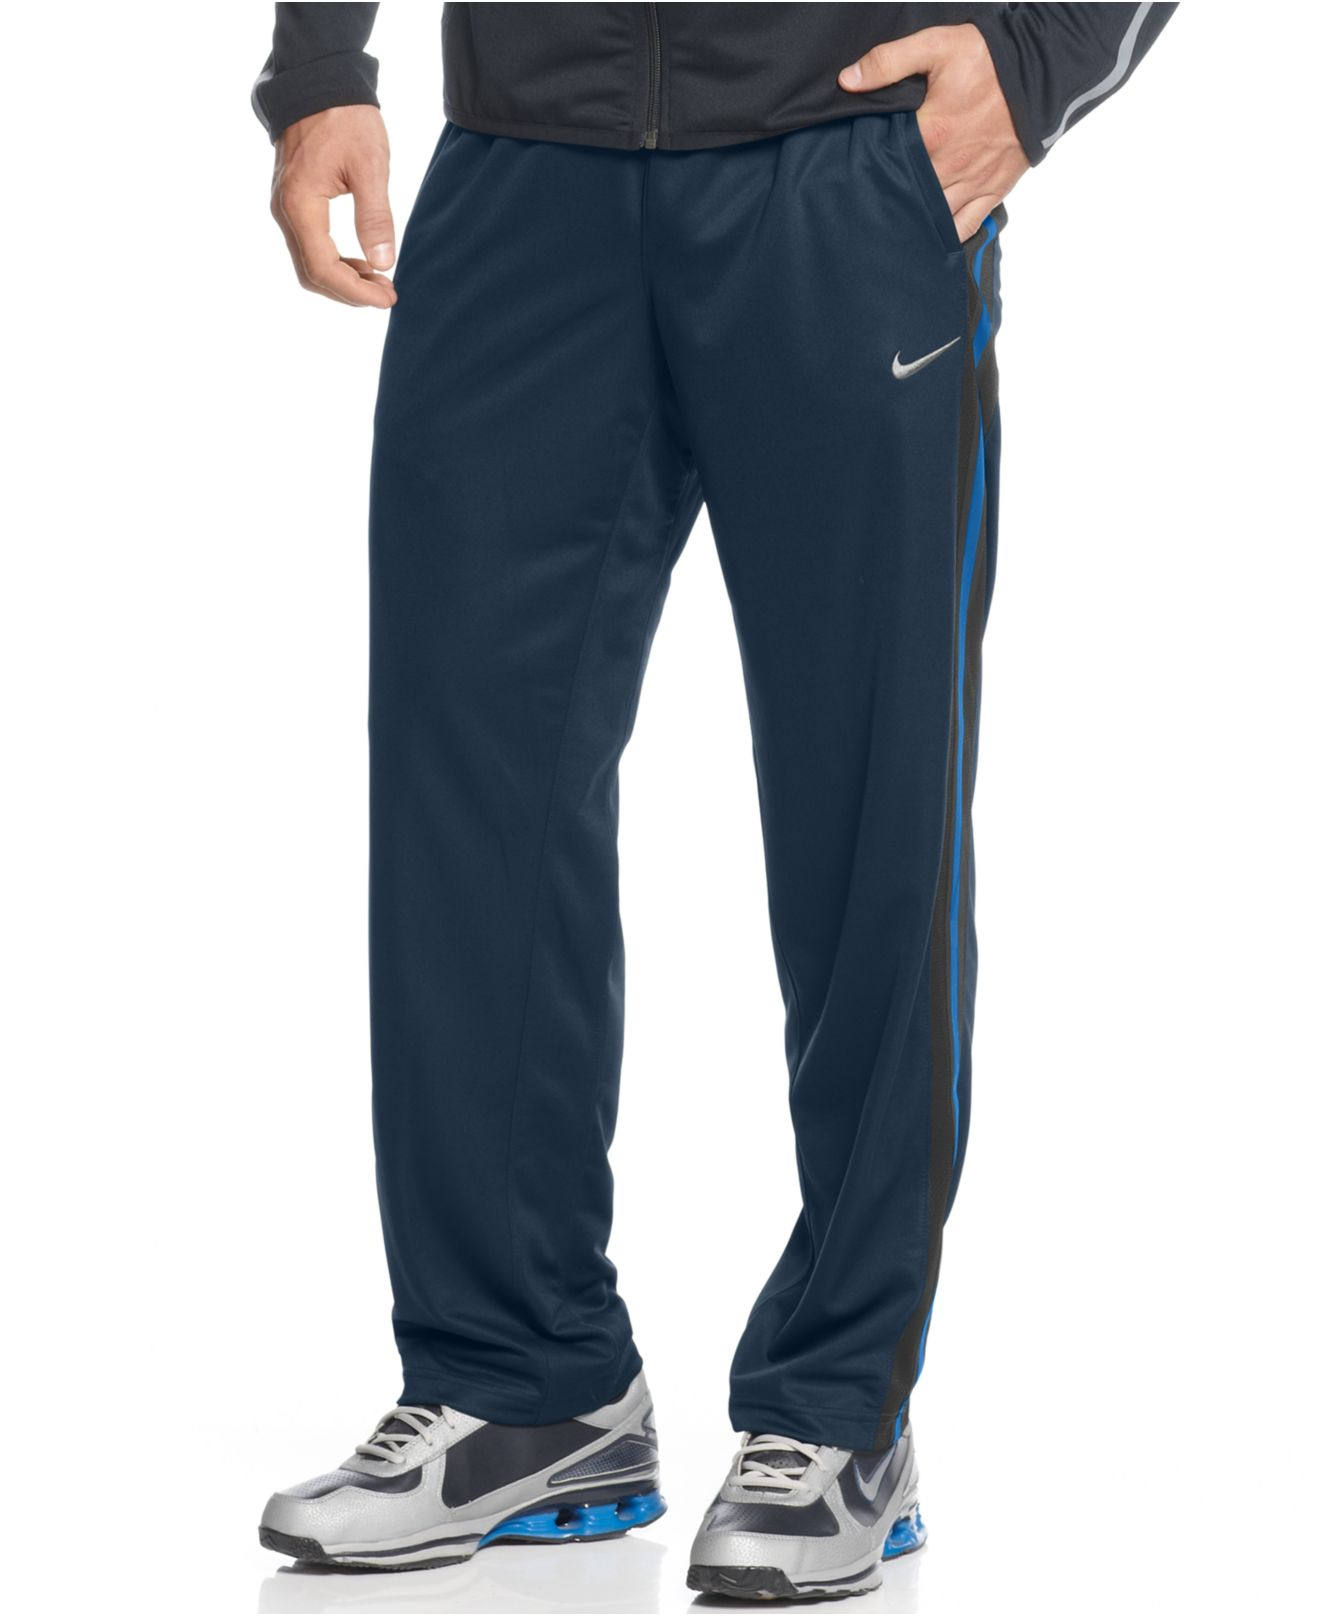 f95a5cdee28fc Nike Men's Epic Track Pants in Blue for Men - Lyst